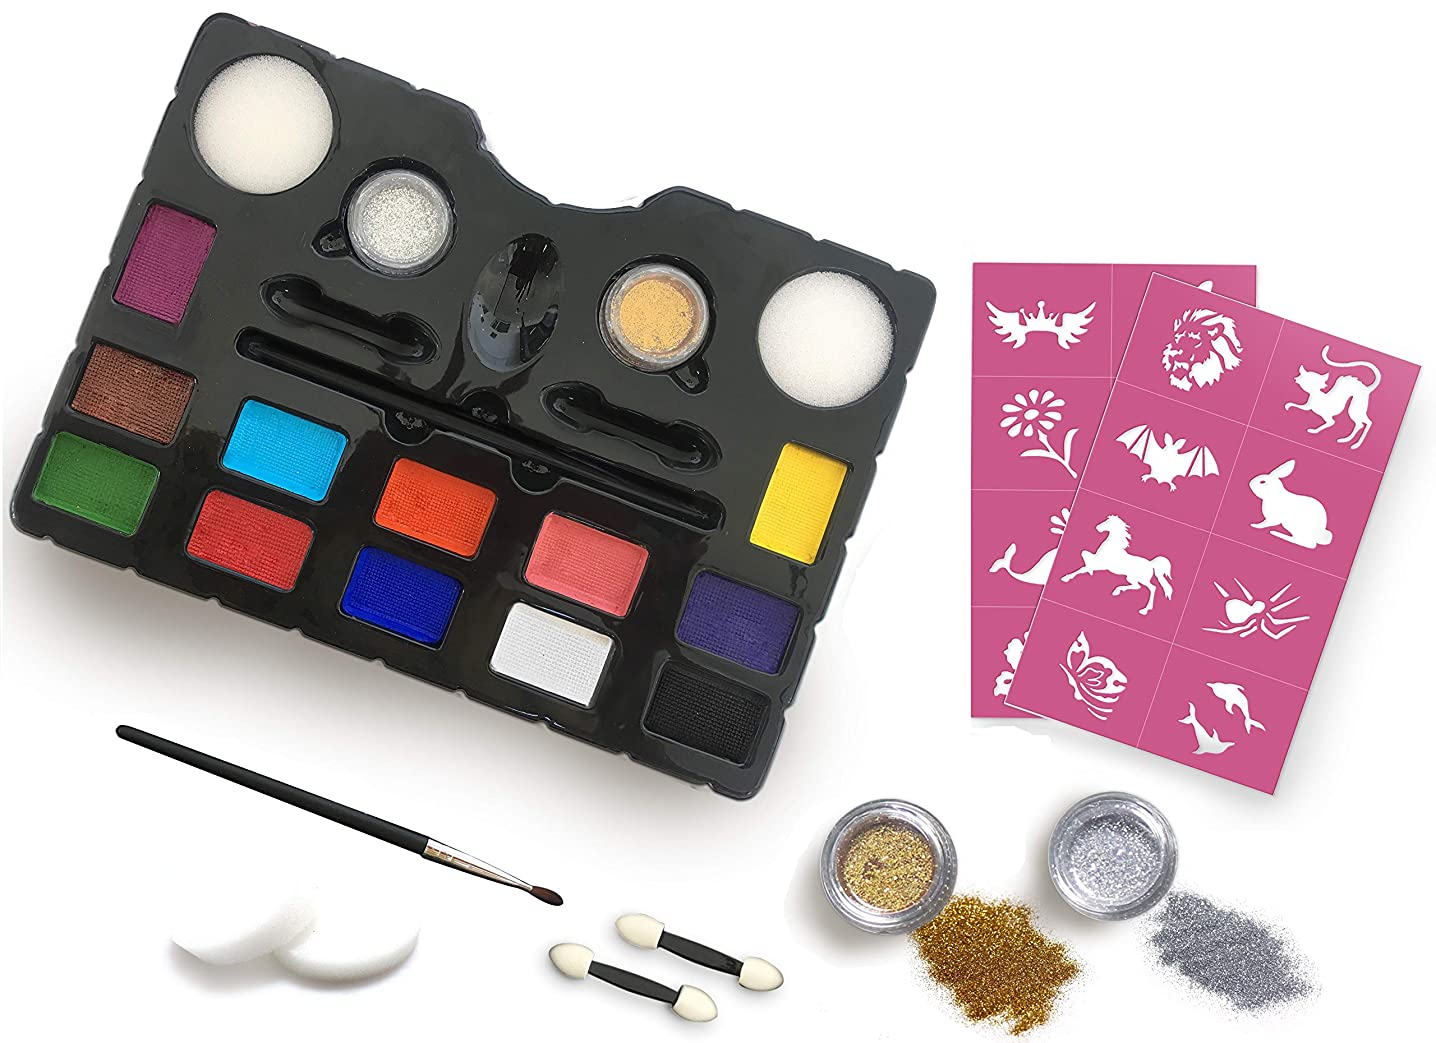 Face Painting Kit –+16 Stencils – 12 Vibrant Colors – Silver and Gold Glitters – Easy to Use Face Painting Kit for Kids – Safe and Non-Toxic – Water Based – Body Makeup